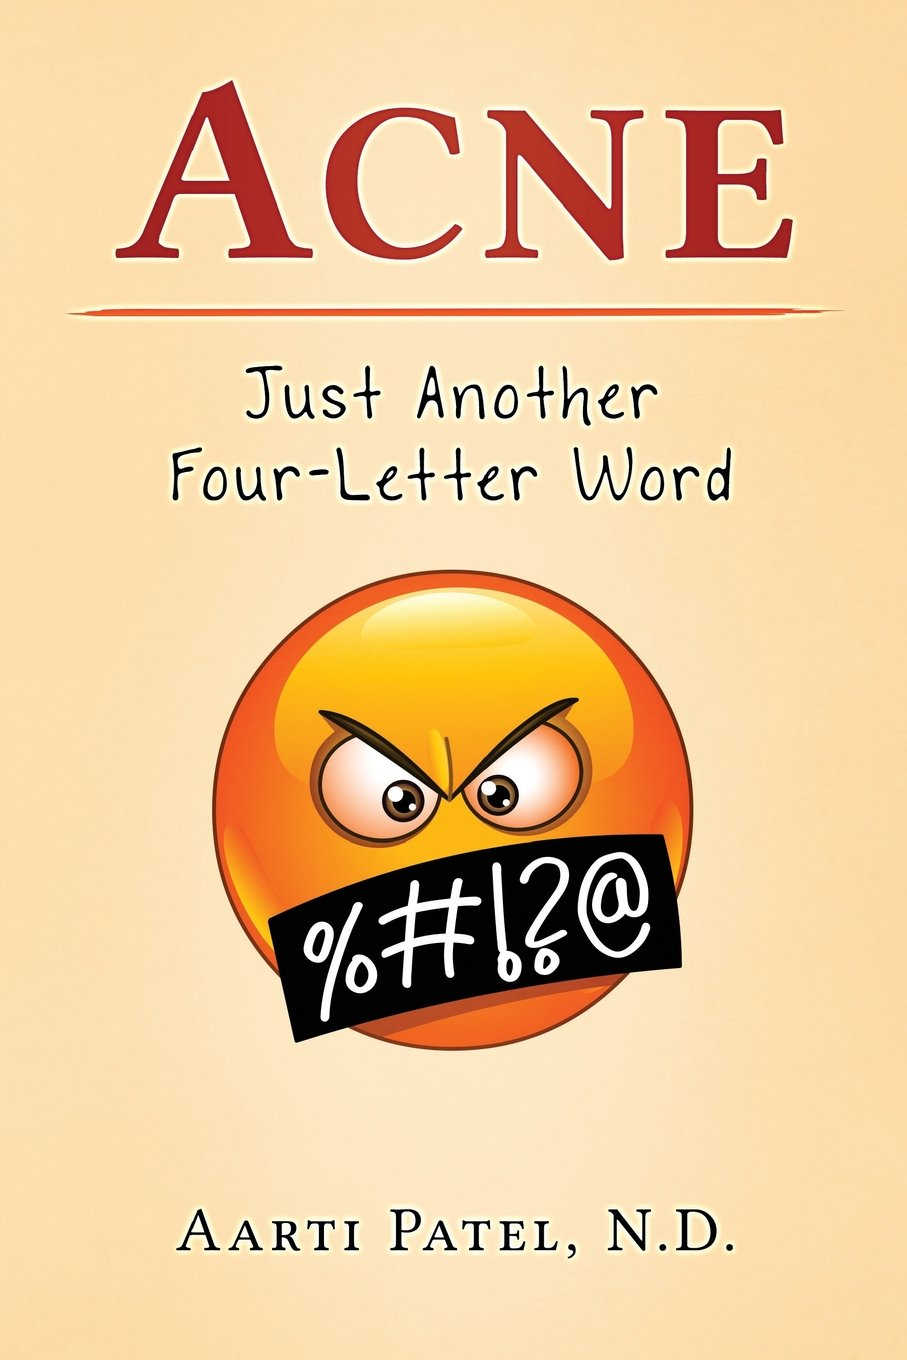 Acne: Just Another Four-Letter Word: Amazon.co.uk: Aarti Patel N.D. ...